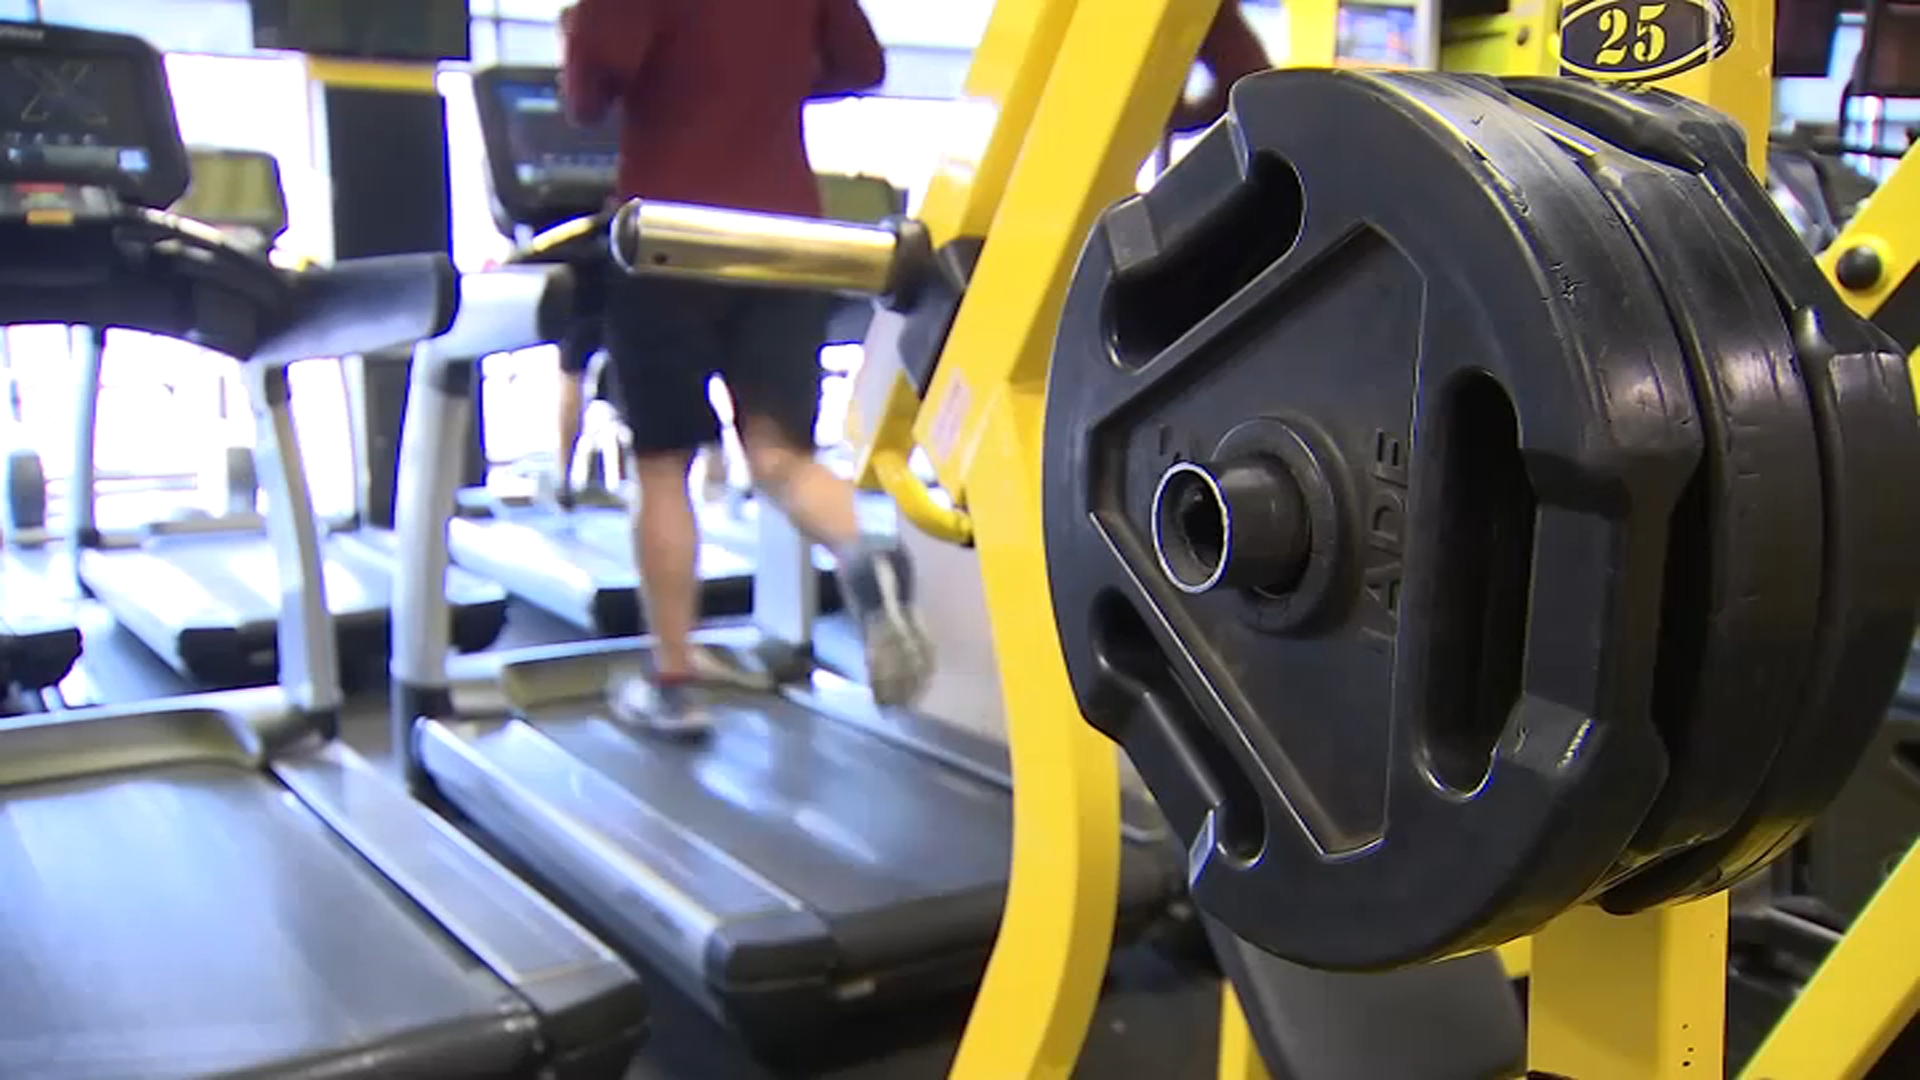 San Diego Gym Owners Sue State, Local Officials over Pandemic Restrictions